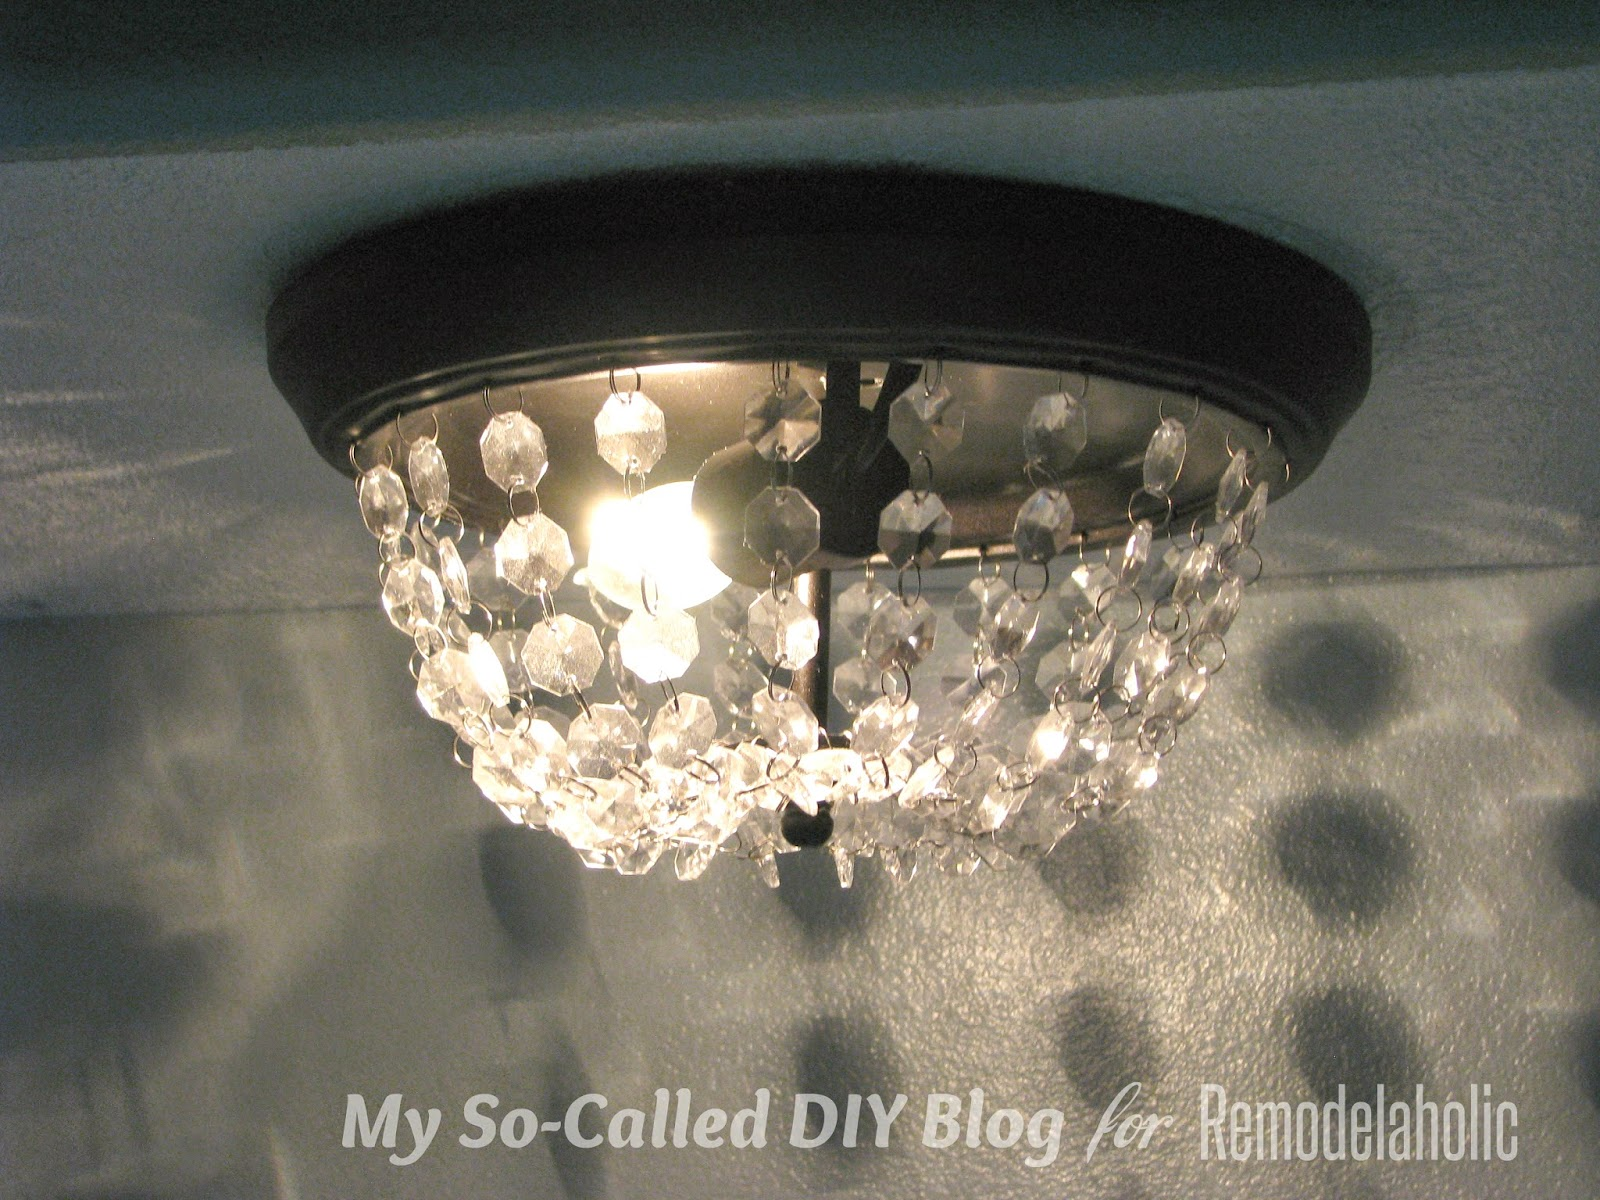 Remodelaholic | Update a Dome Ceiling Light with Faceted Crystals